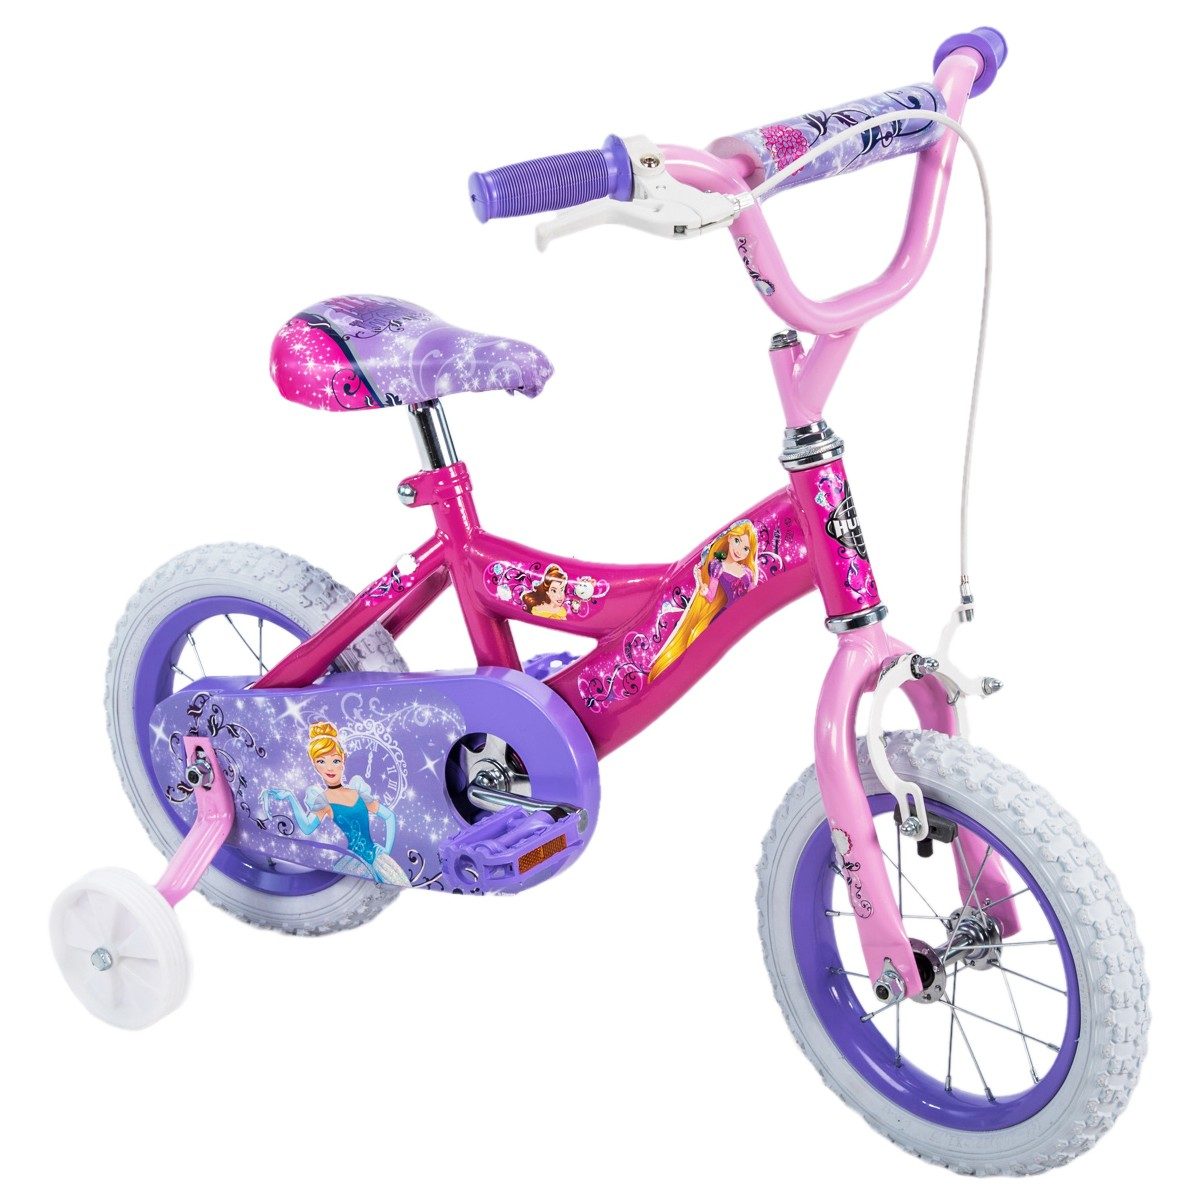 Bike Basket Big W Disney Princess Kids 30cm Bike